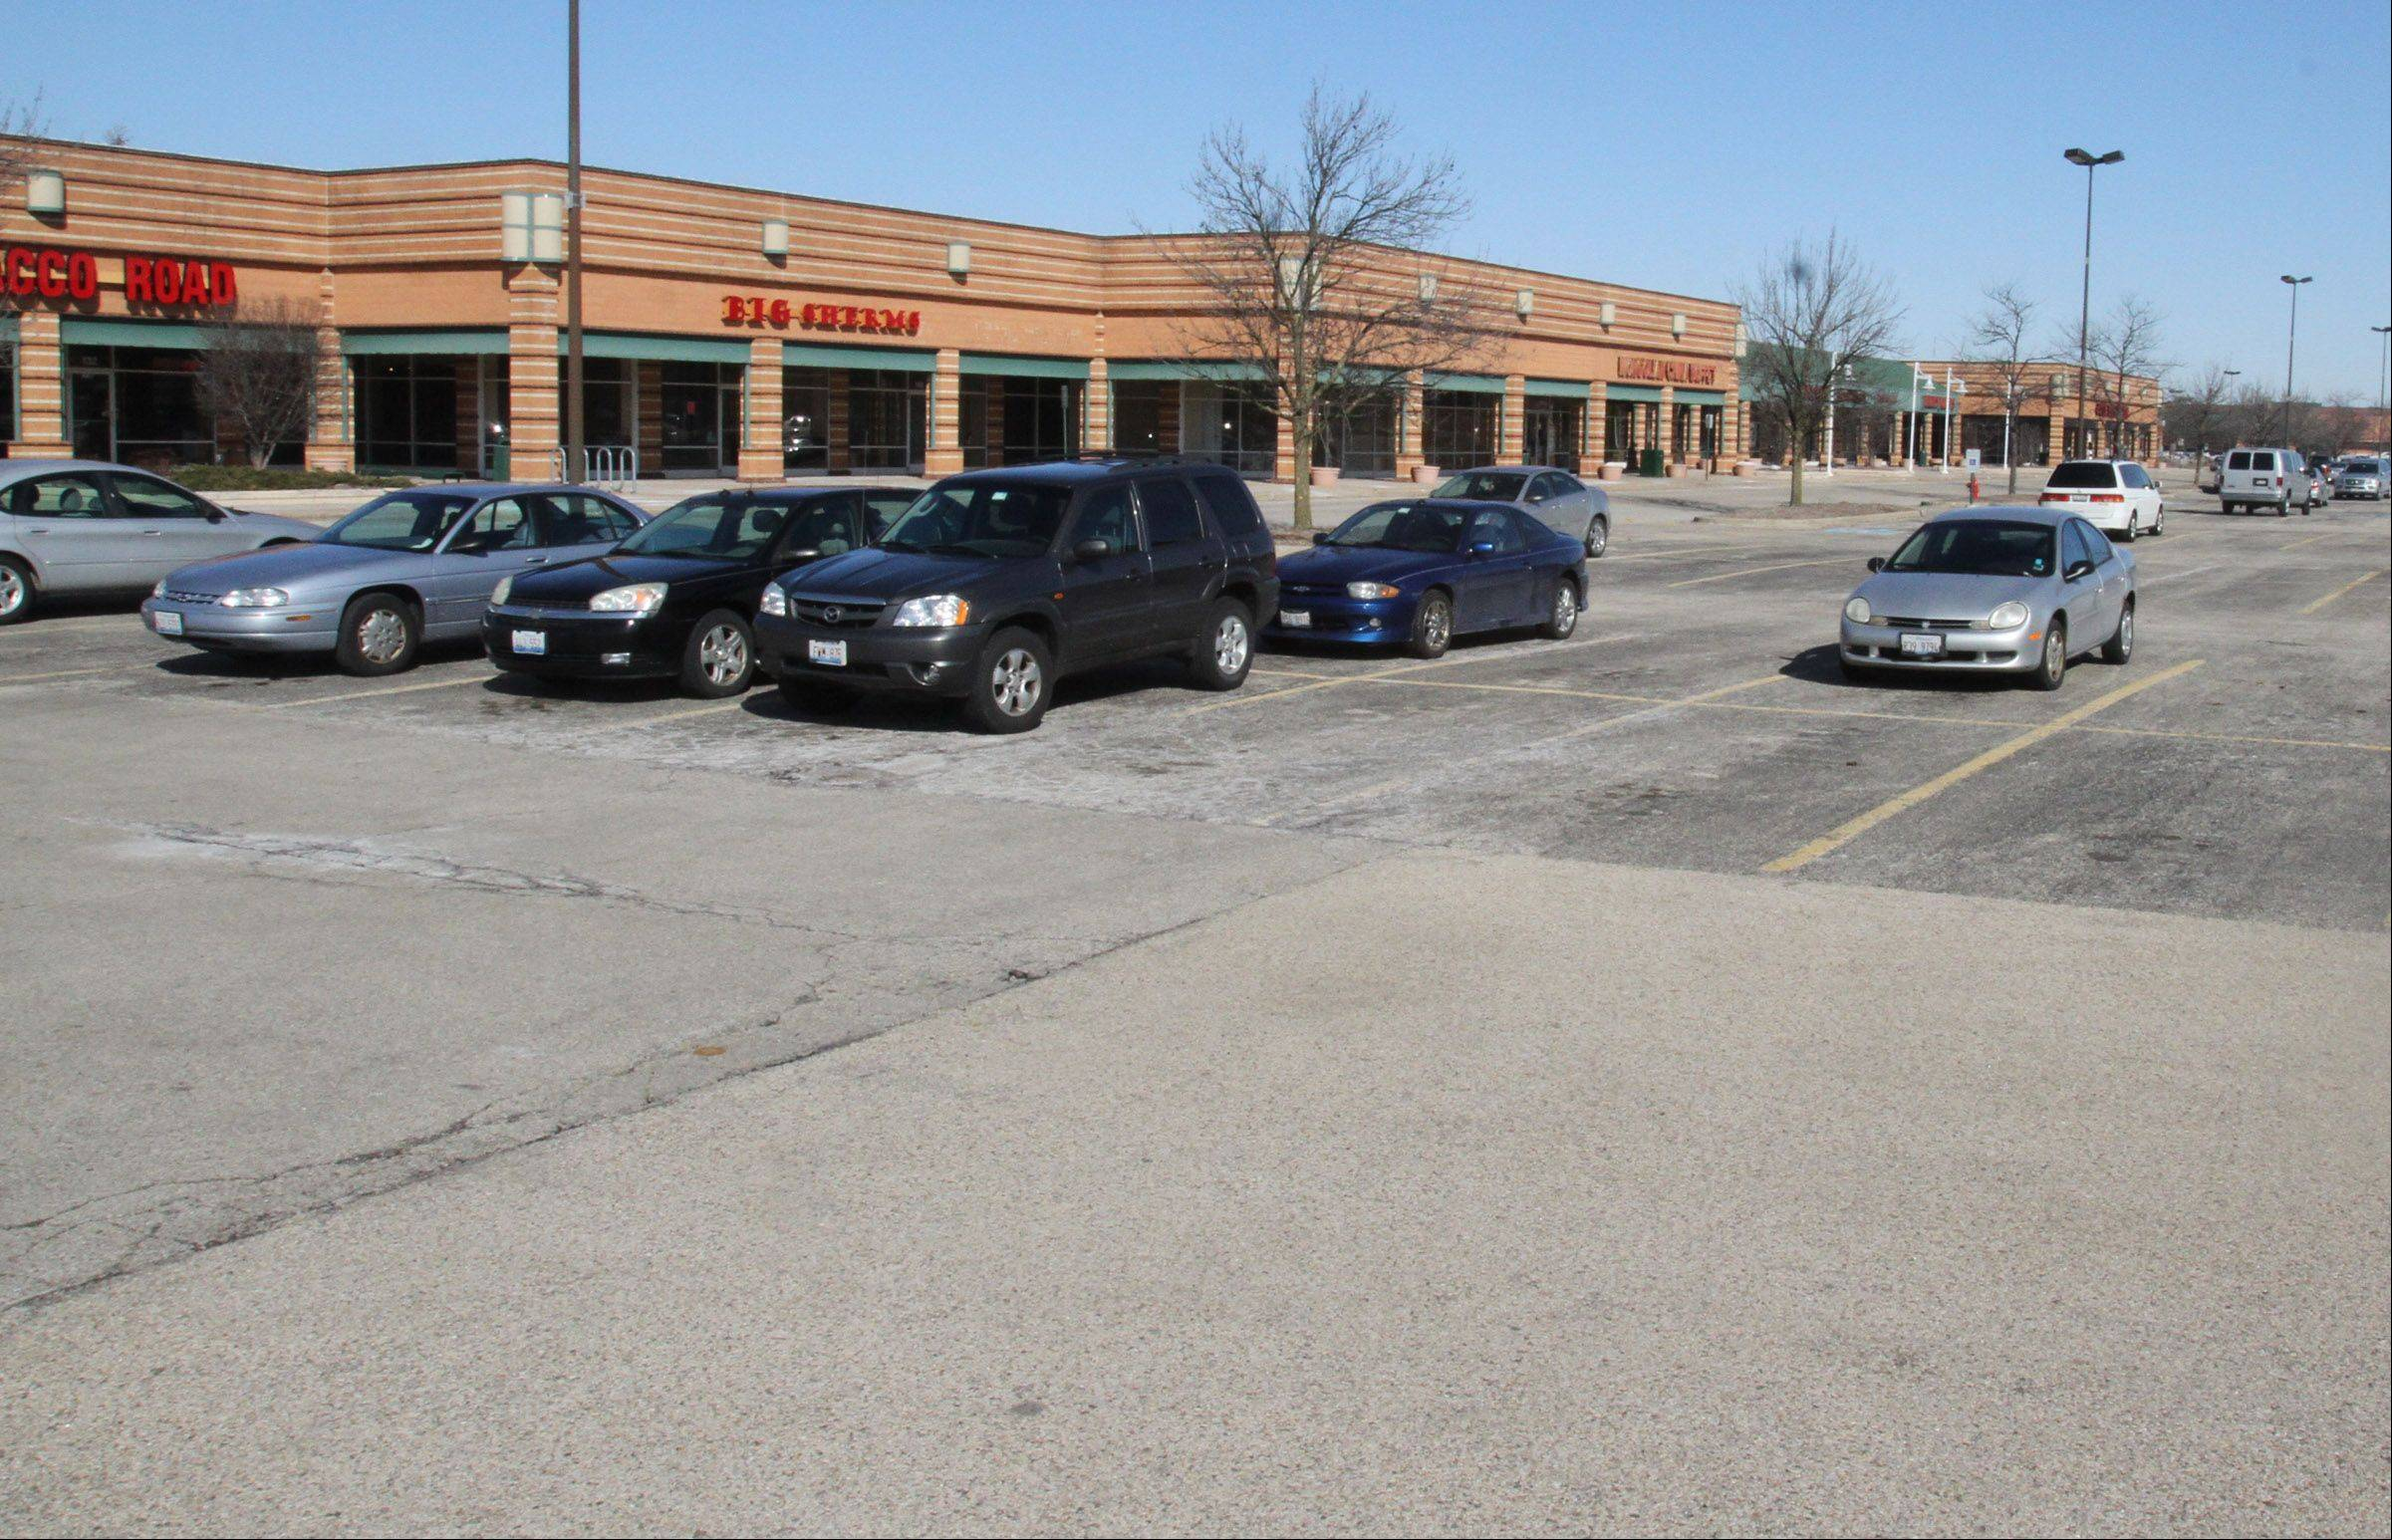 This is the Buffalo Grove Town Center at Lake-Cook Road and McHenry Road in Buffalo Grove.